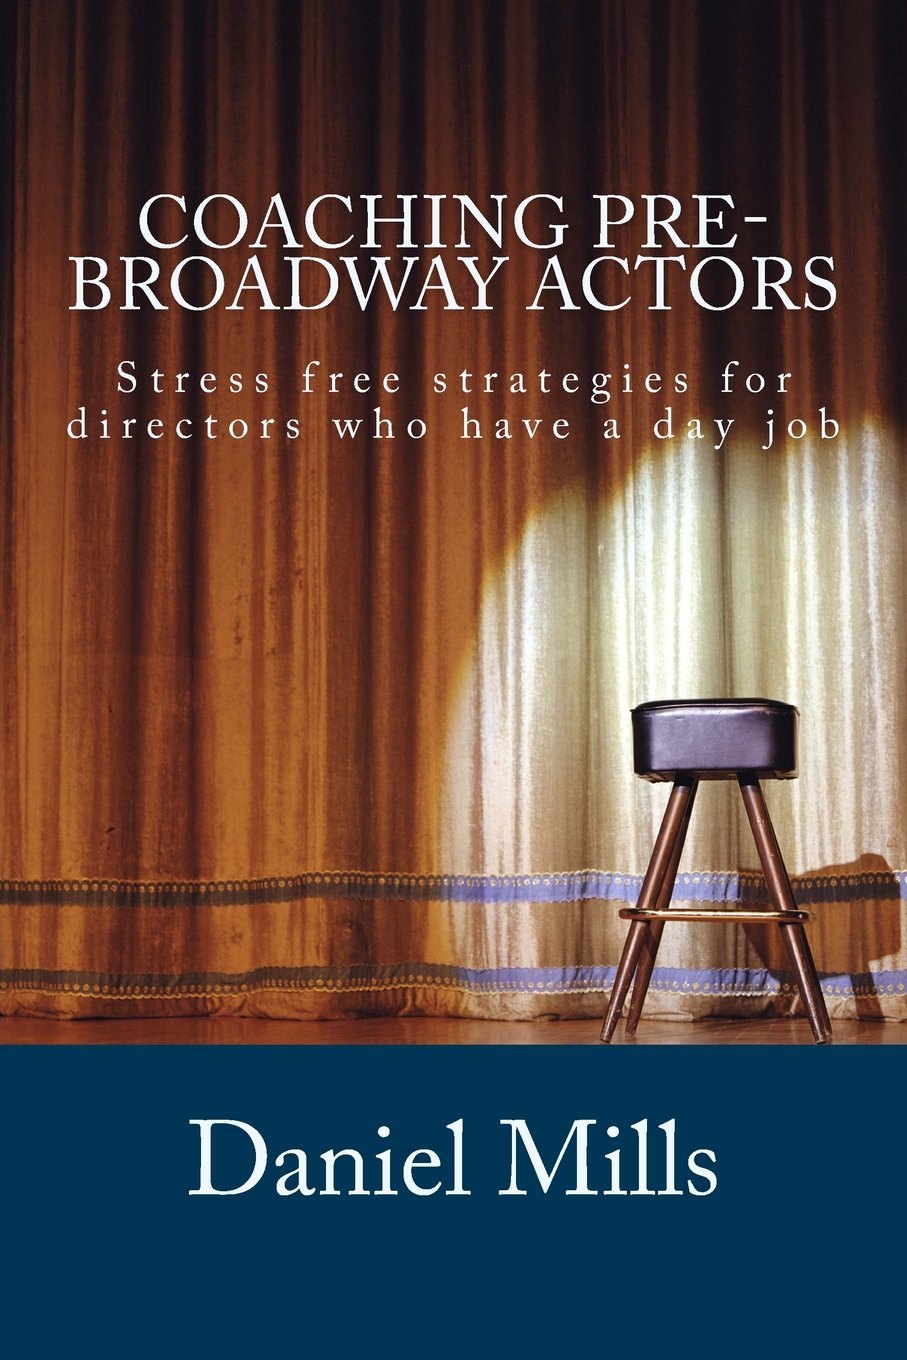 Coaching Pre-Broadway Actors: Stress free strategies for directors who have a day job (Stress Free Theater) (Volume 2) pdf